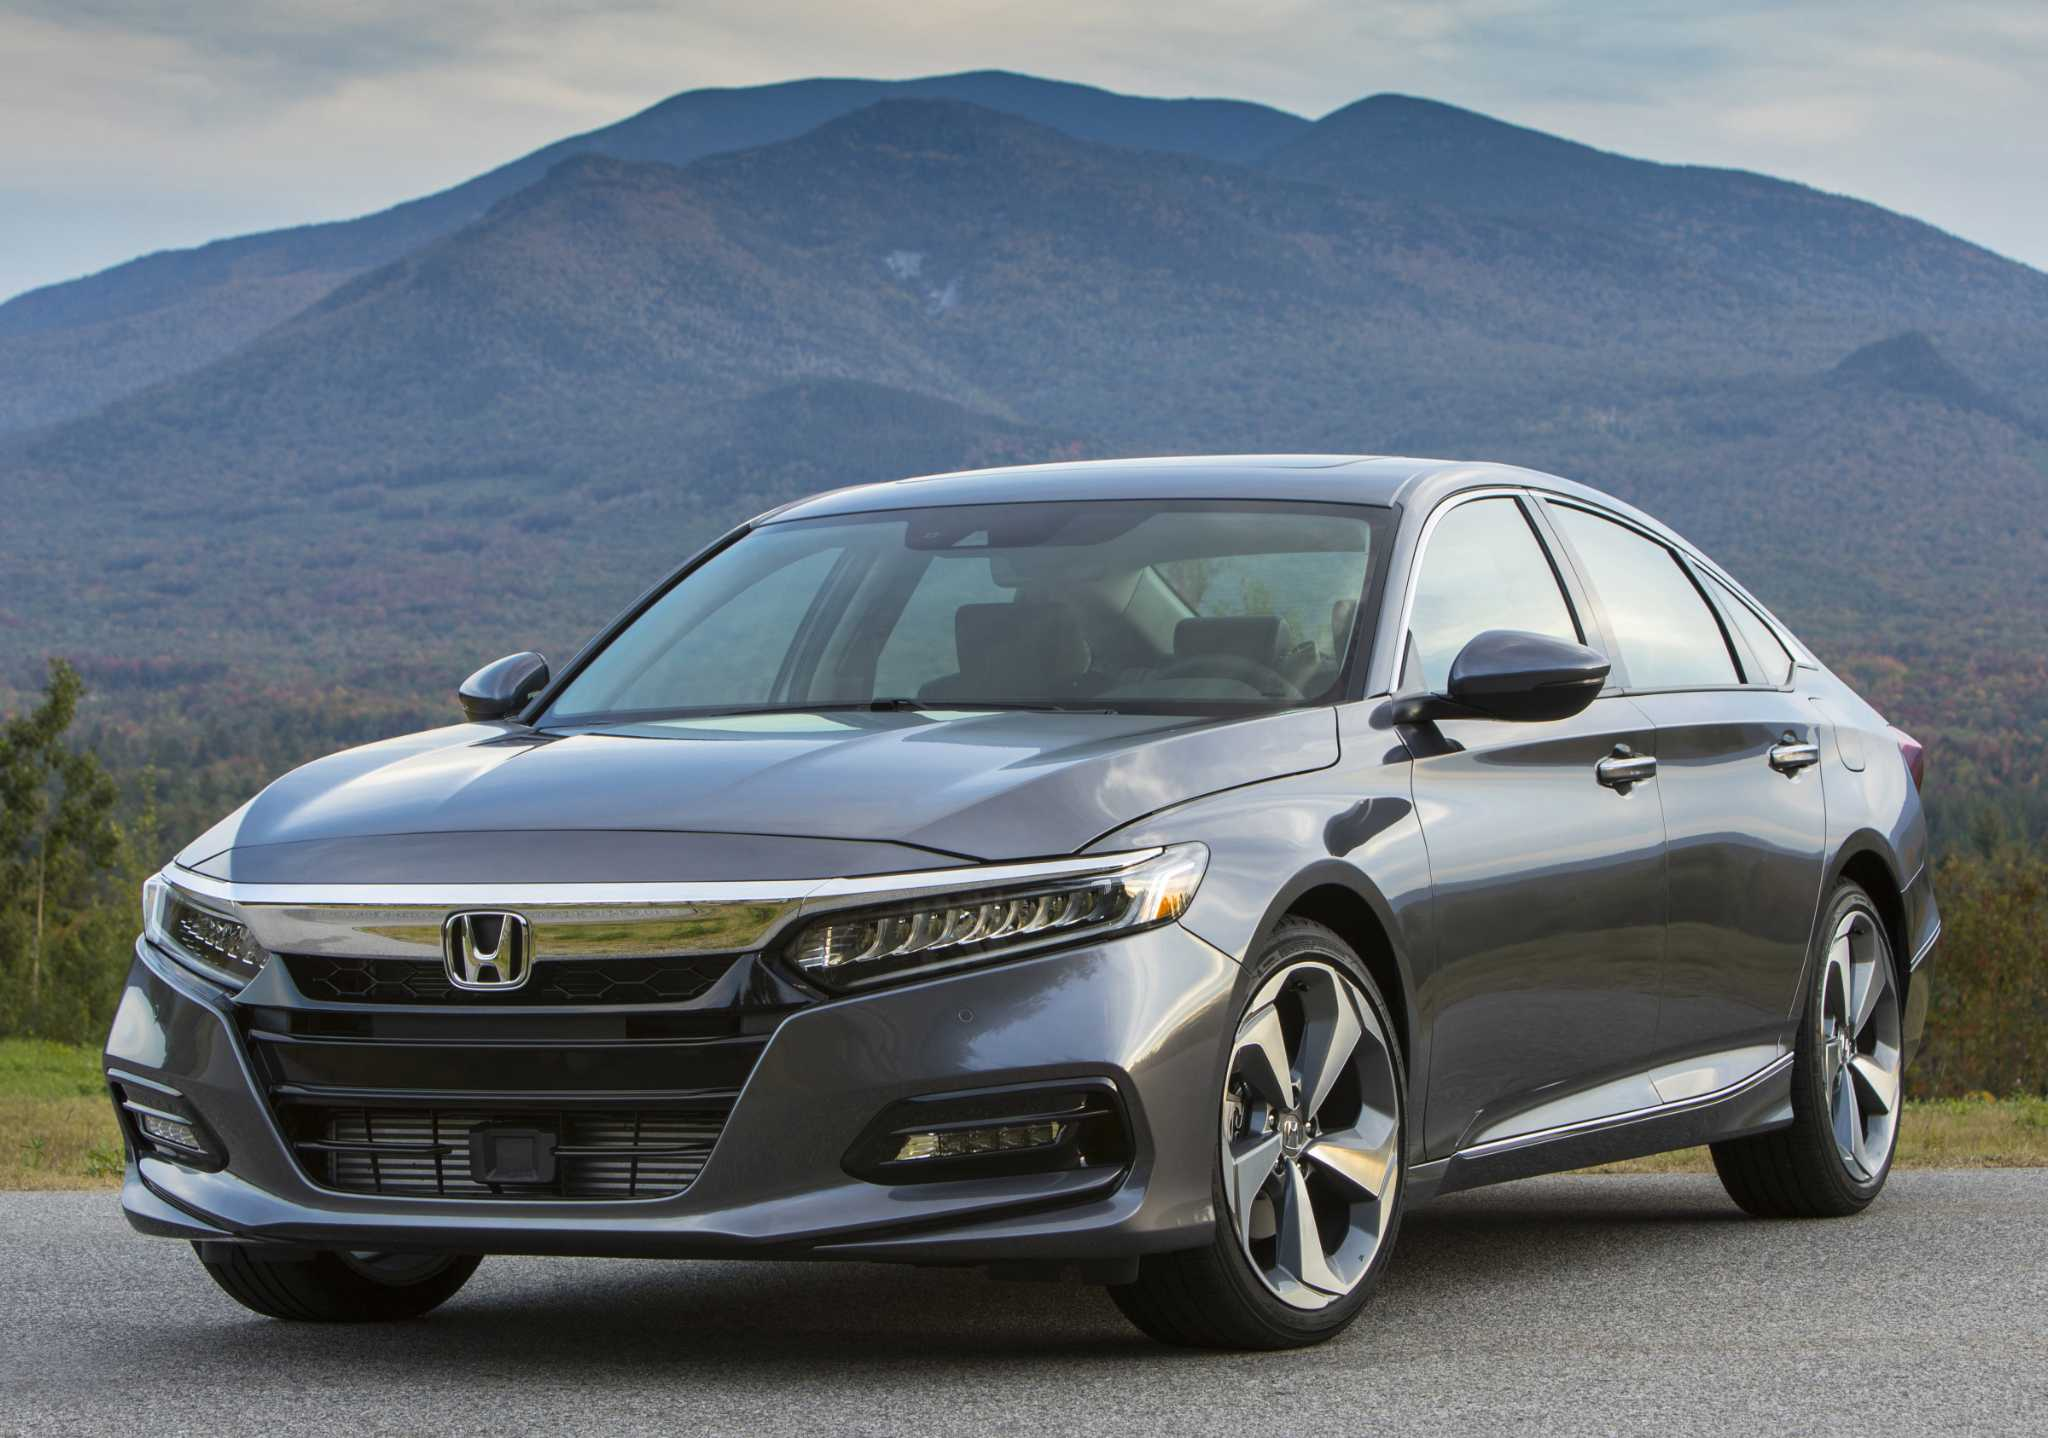 Honda Accord debuts for 2018 with its first-ever turbocharged engines